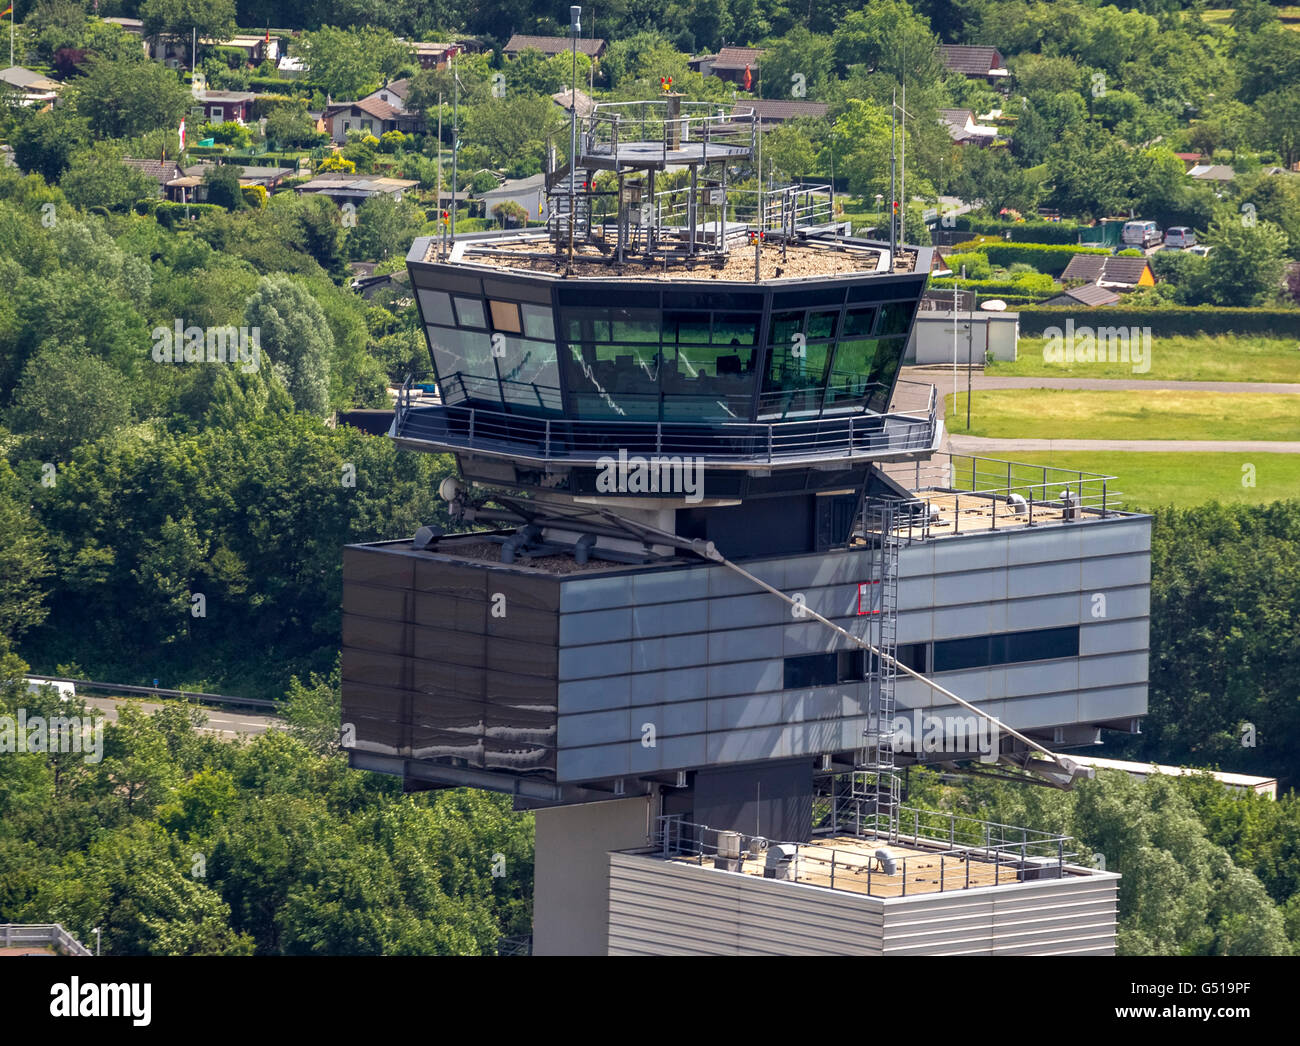 Aerial view, air traffic control, air traffic controllers, Kontroler, tower, tower of the International Airport, - Stock Image